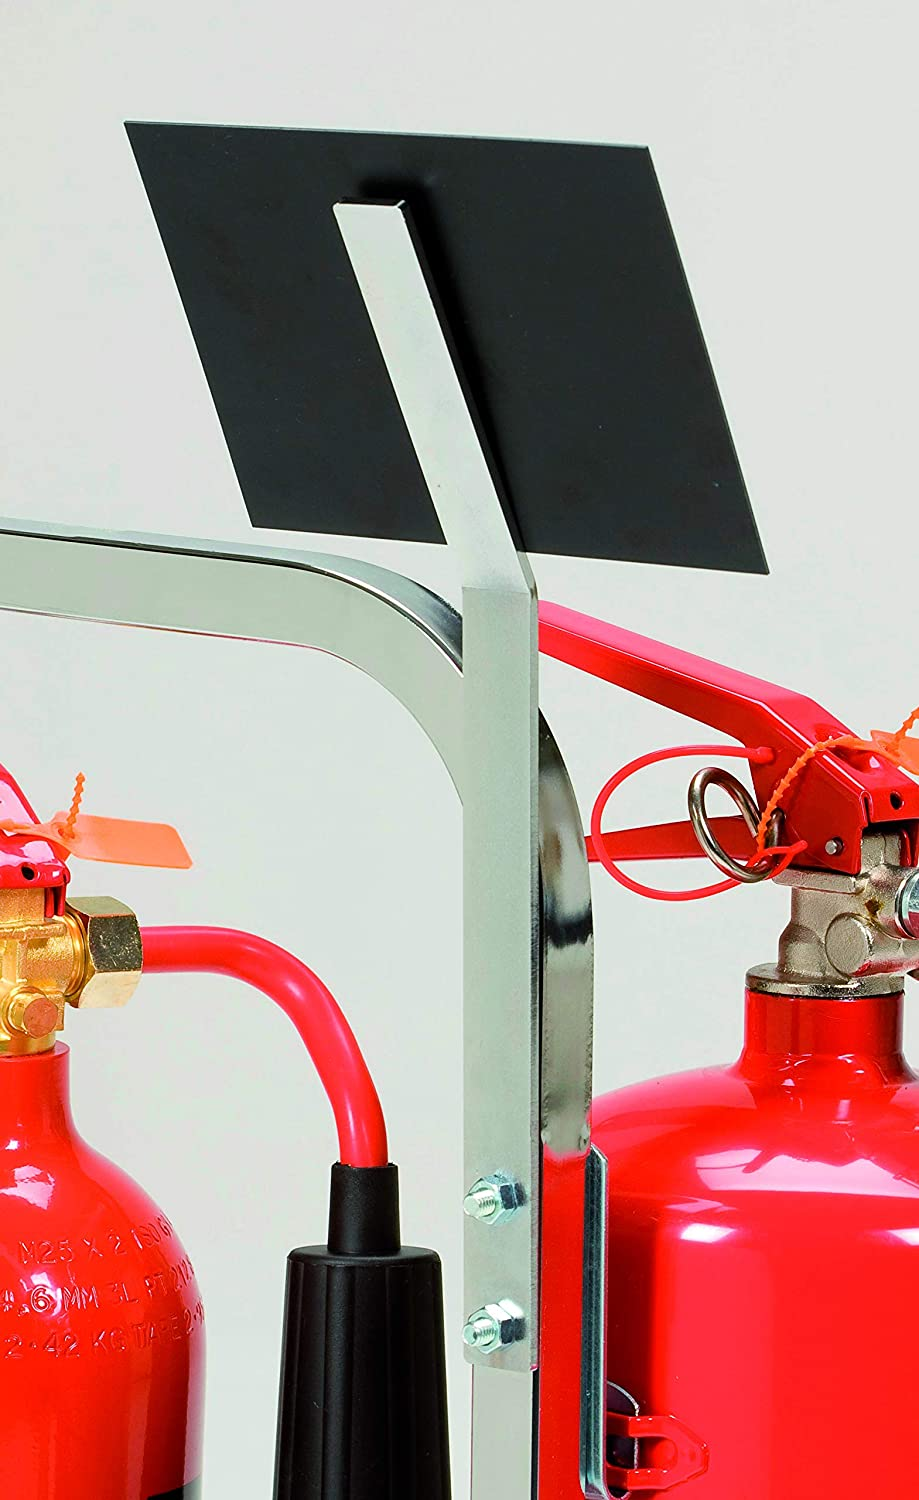 Firechief CFC Plastic sign clip for tubular stands